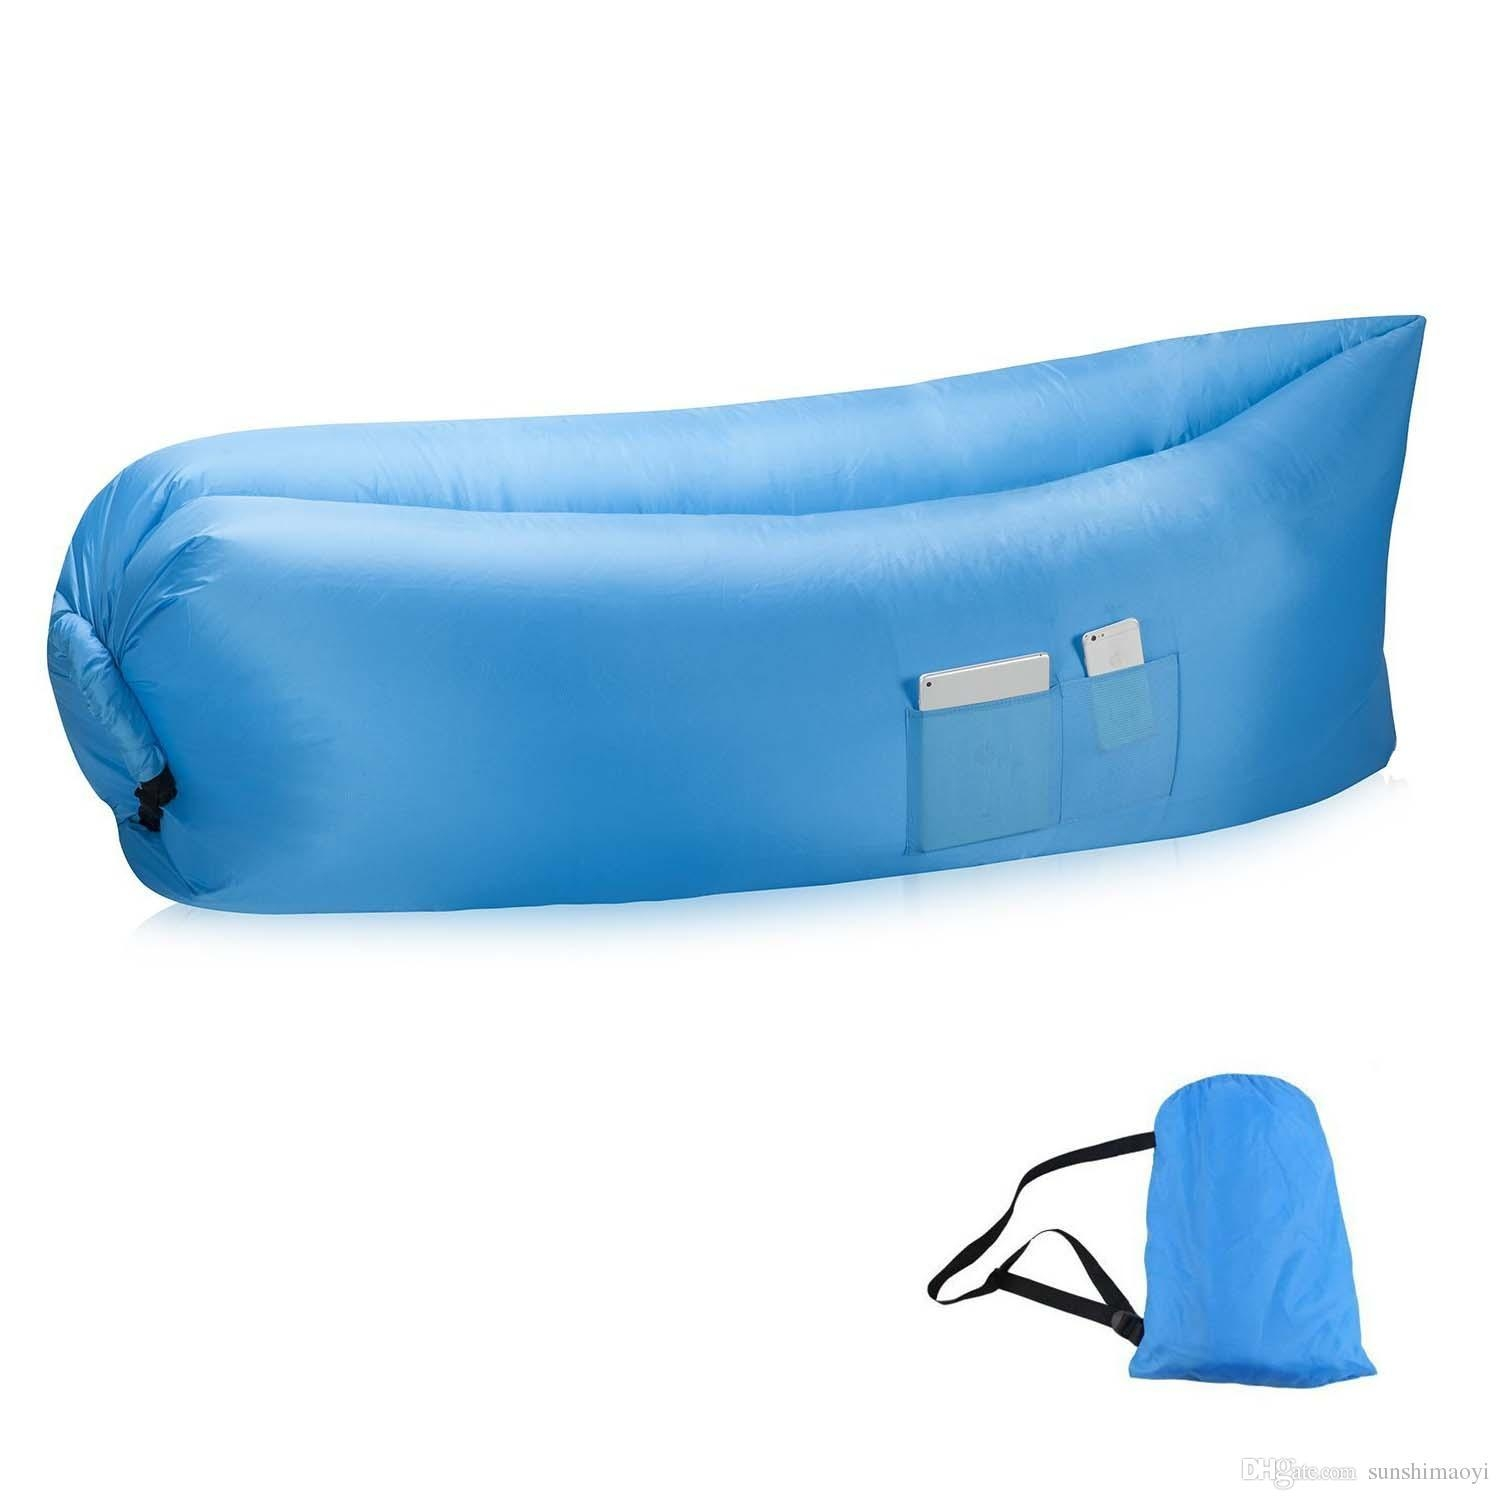 New Most Popular Lay Bag Air Bed Sofa Inflatable Air Bags Sleeping Regarding Sleeping Bag Sofas (View 2 of 20)